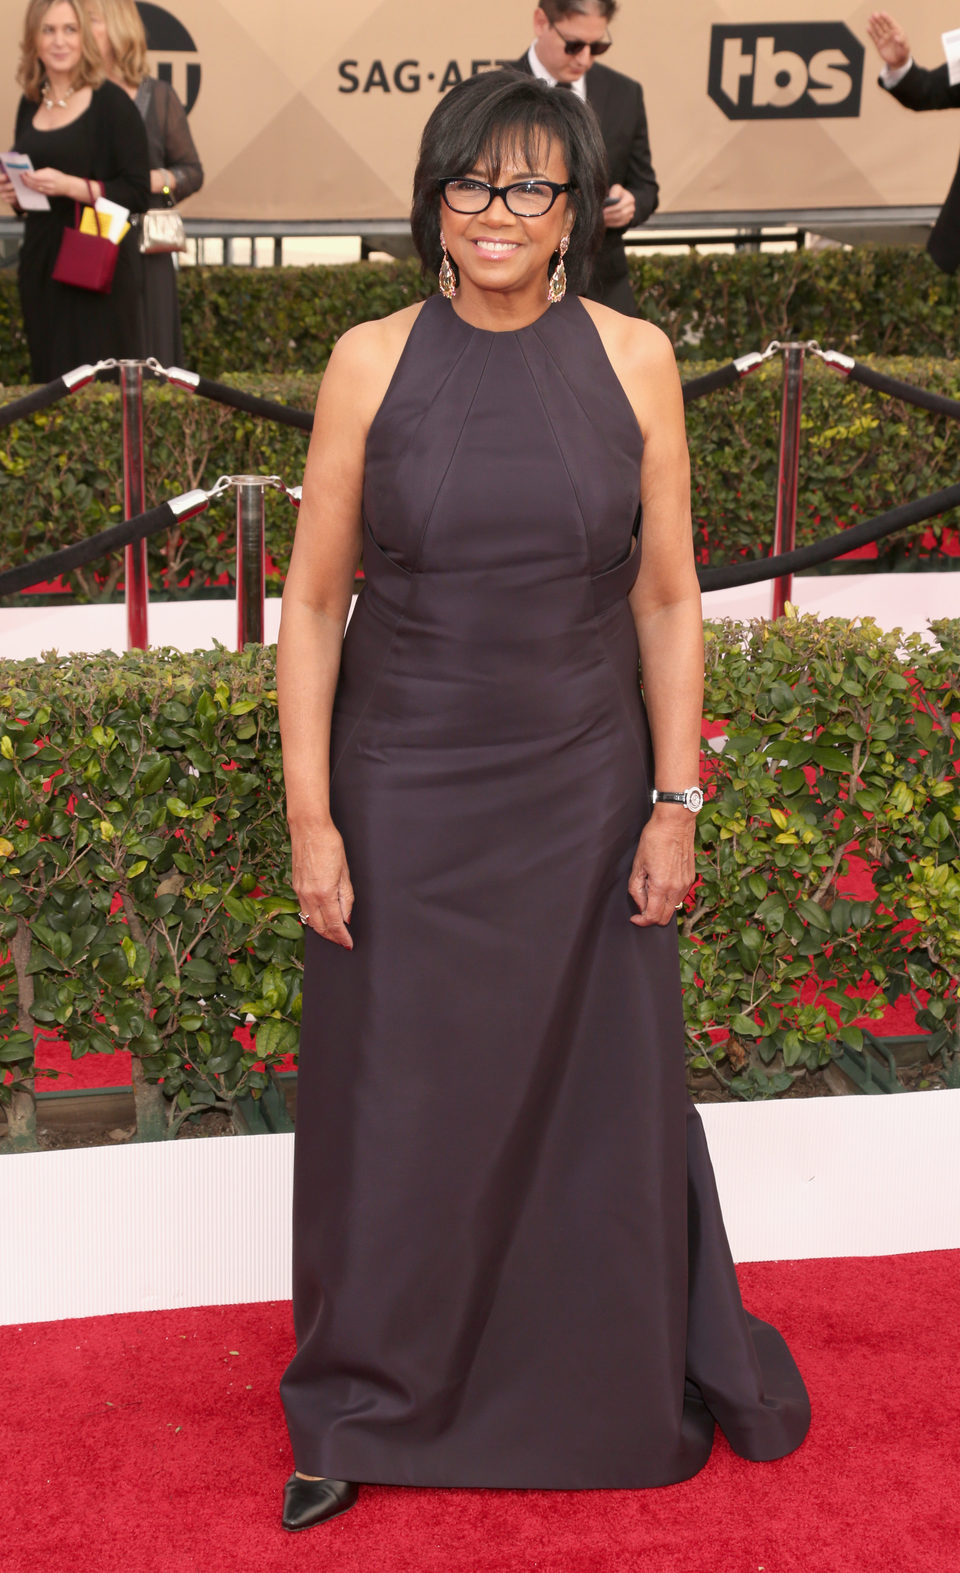 Cheryl Boone Isaacs in red carpet of SAG Awards 2016